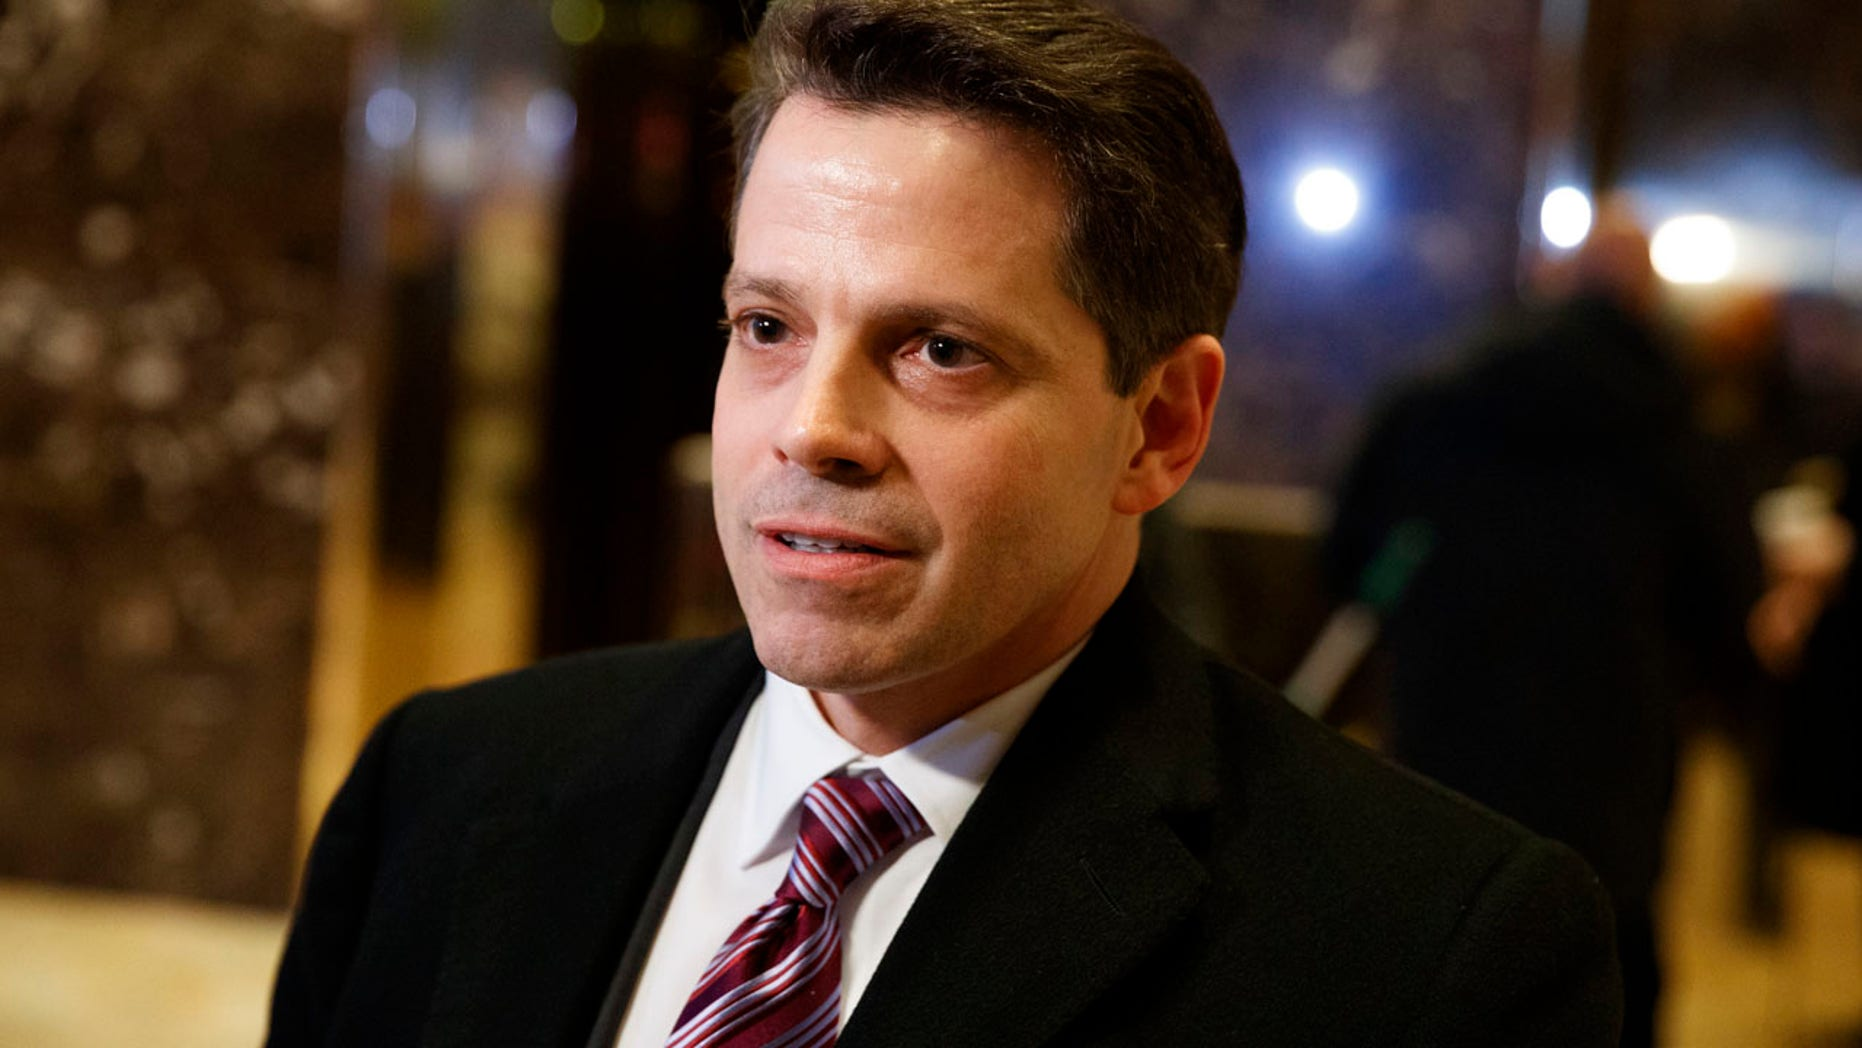 In this Jan. 13, 2017 file photo, Anthony Scaramucci, a senior adviser to President-elect Donald Trump, talks to reporters in the lobby of Trump Tower in New York.